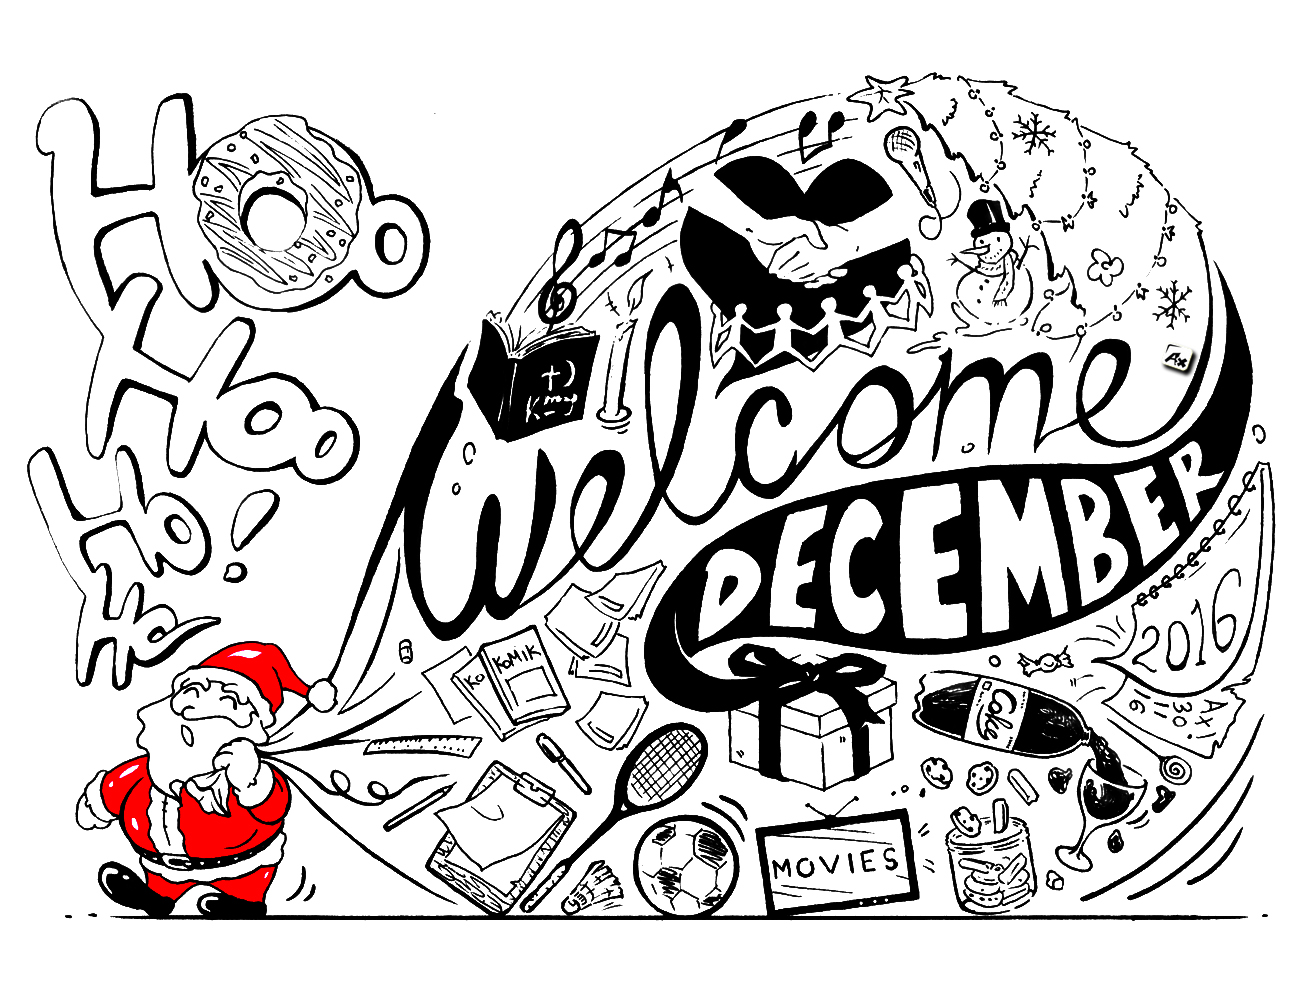 http://axbook.blogspot.co.id/2016/11/art-welcome-december-handlettering-by-ax.html